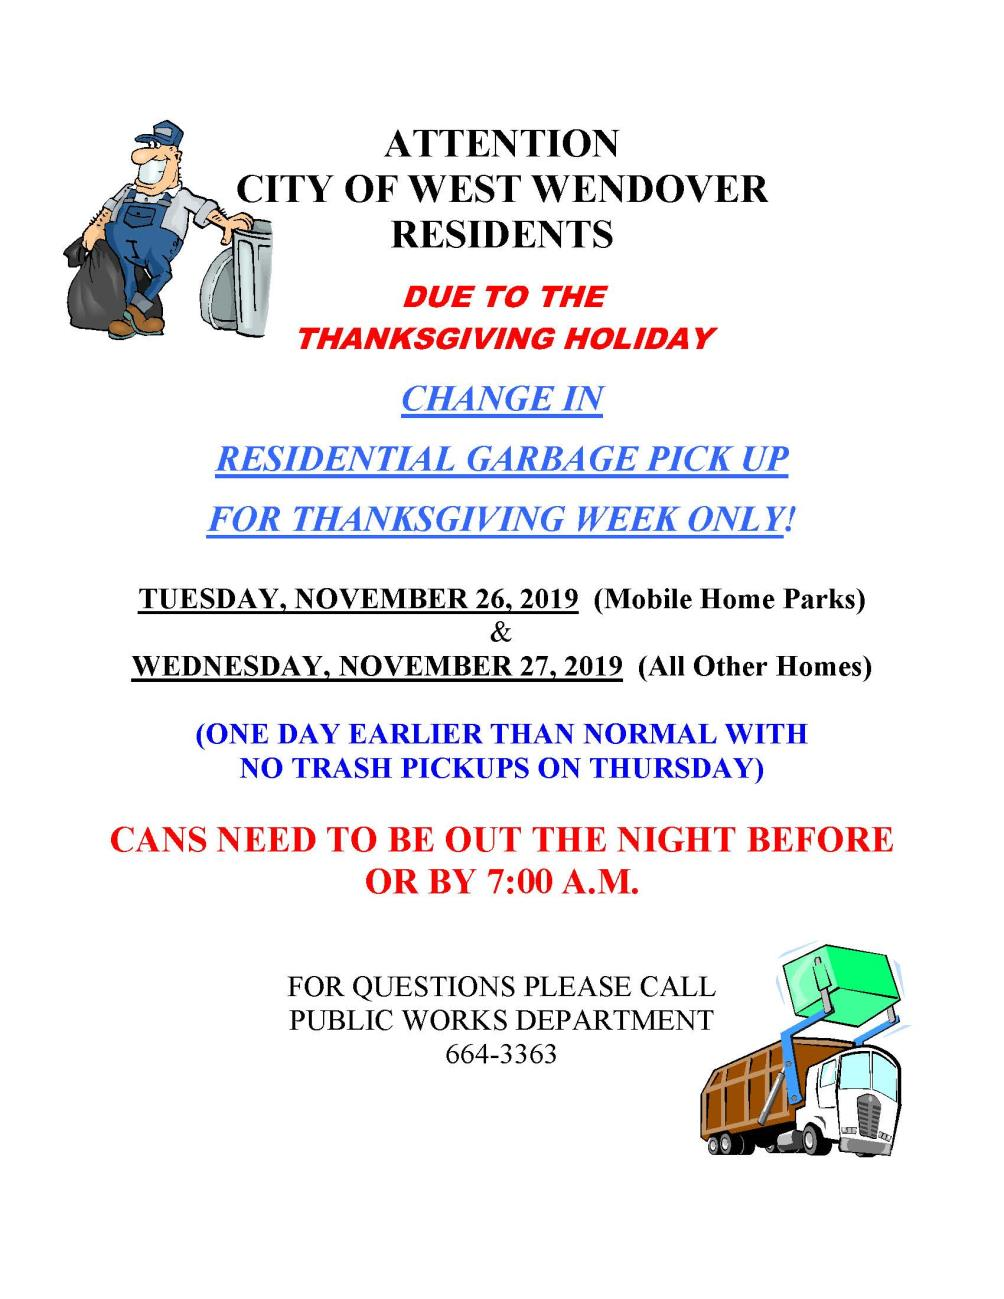 Modified Residential Garbage Pickup for Thanksgiving Day Week